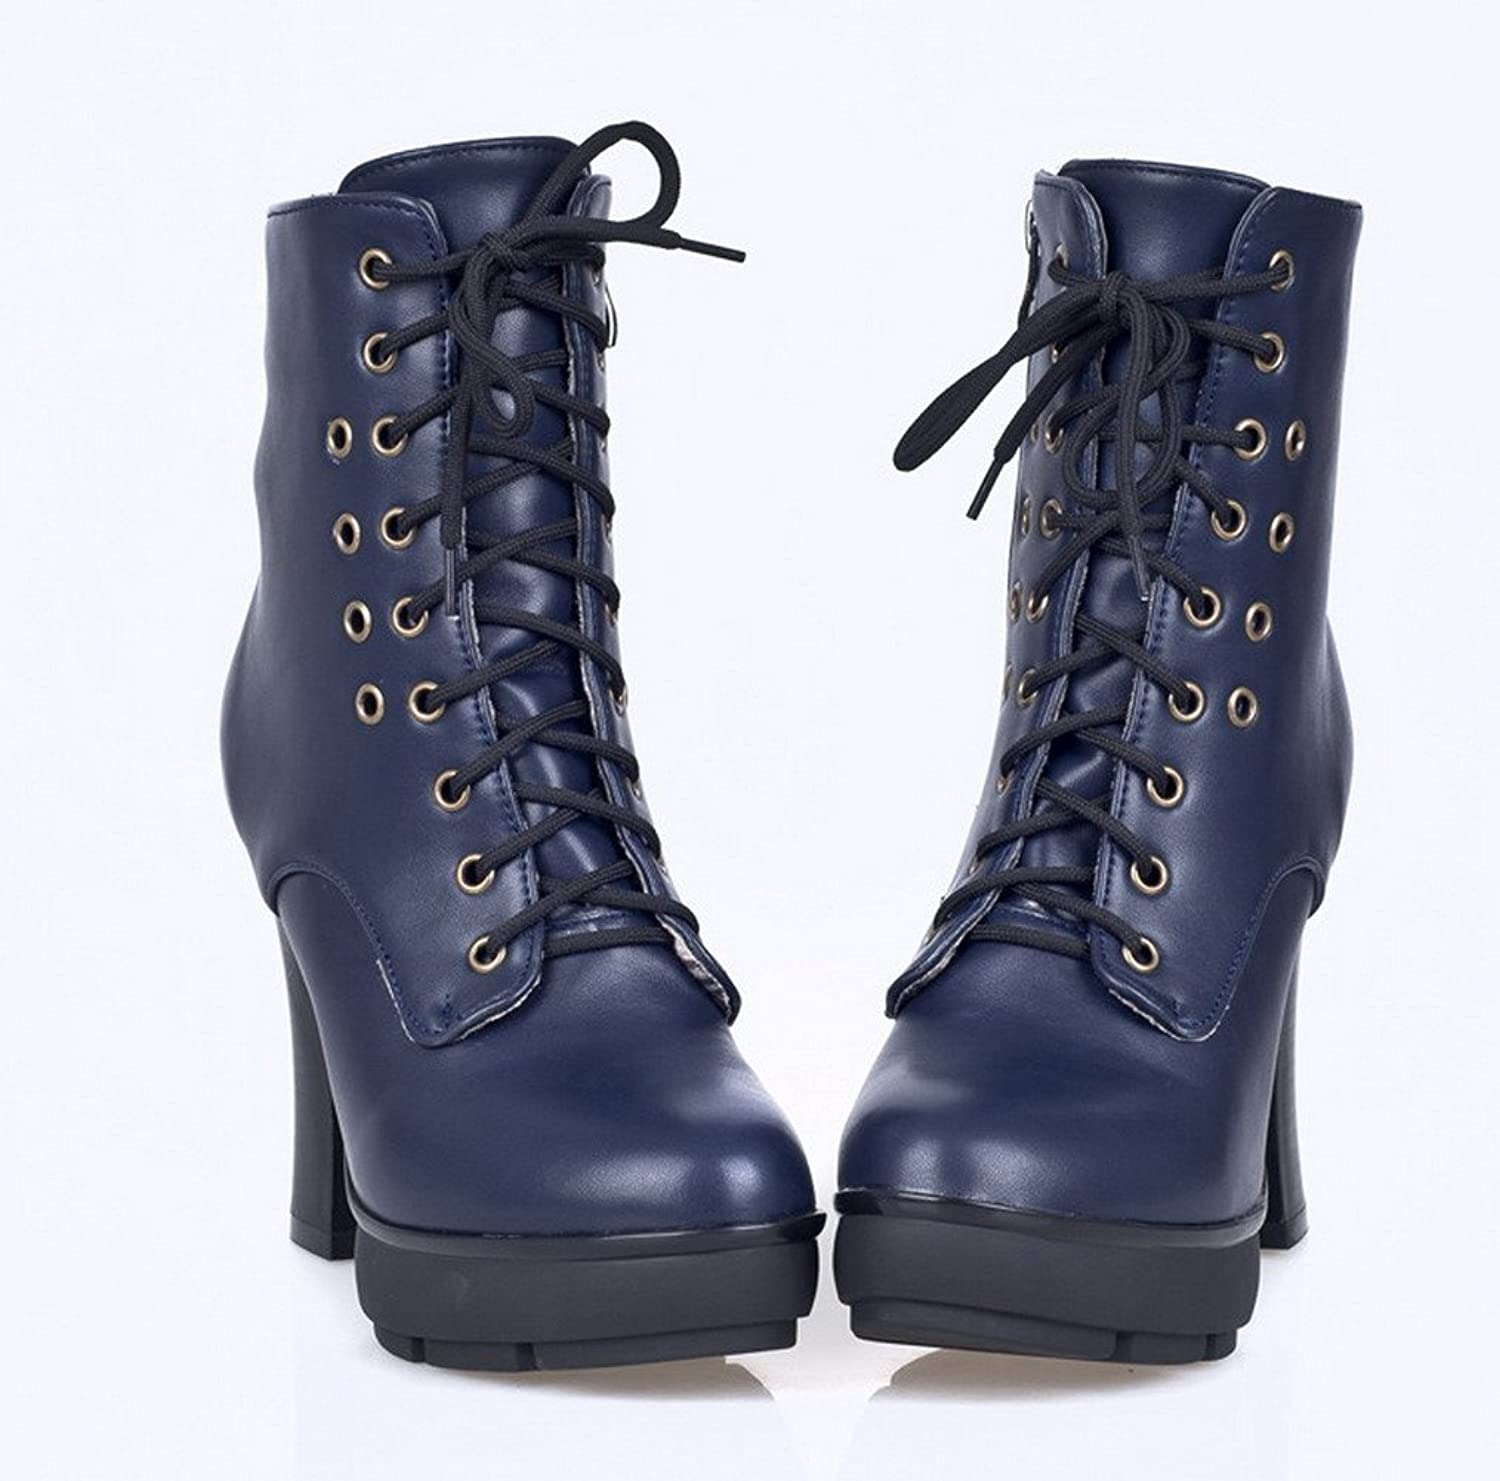 WeenFashion Women's PU Cotton Lining High Chunky Heels colorant Match Ankle Boots with Lace-up and Zipper